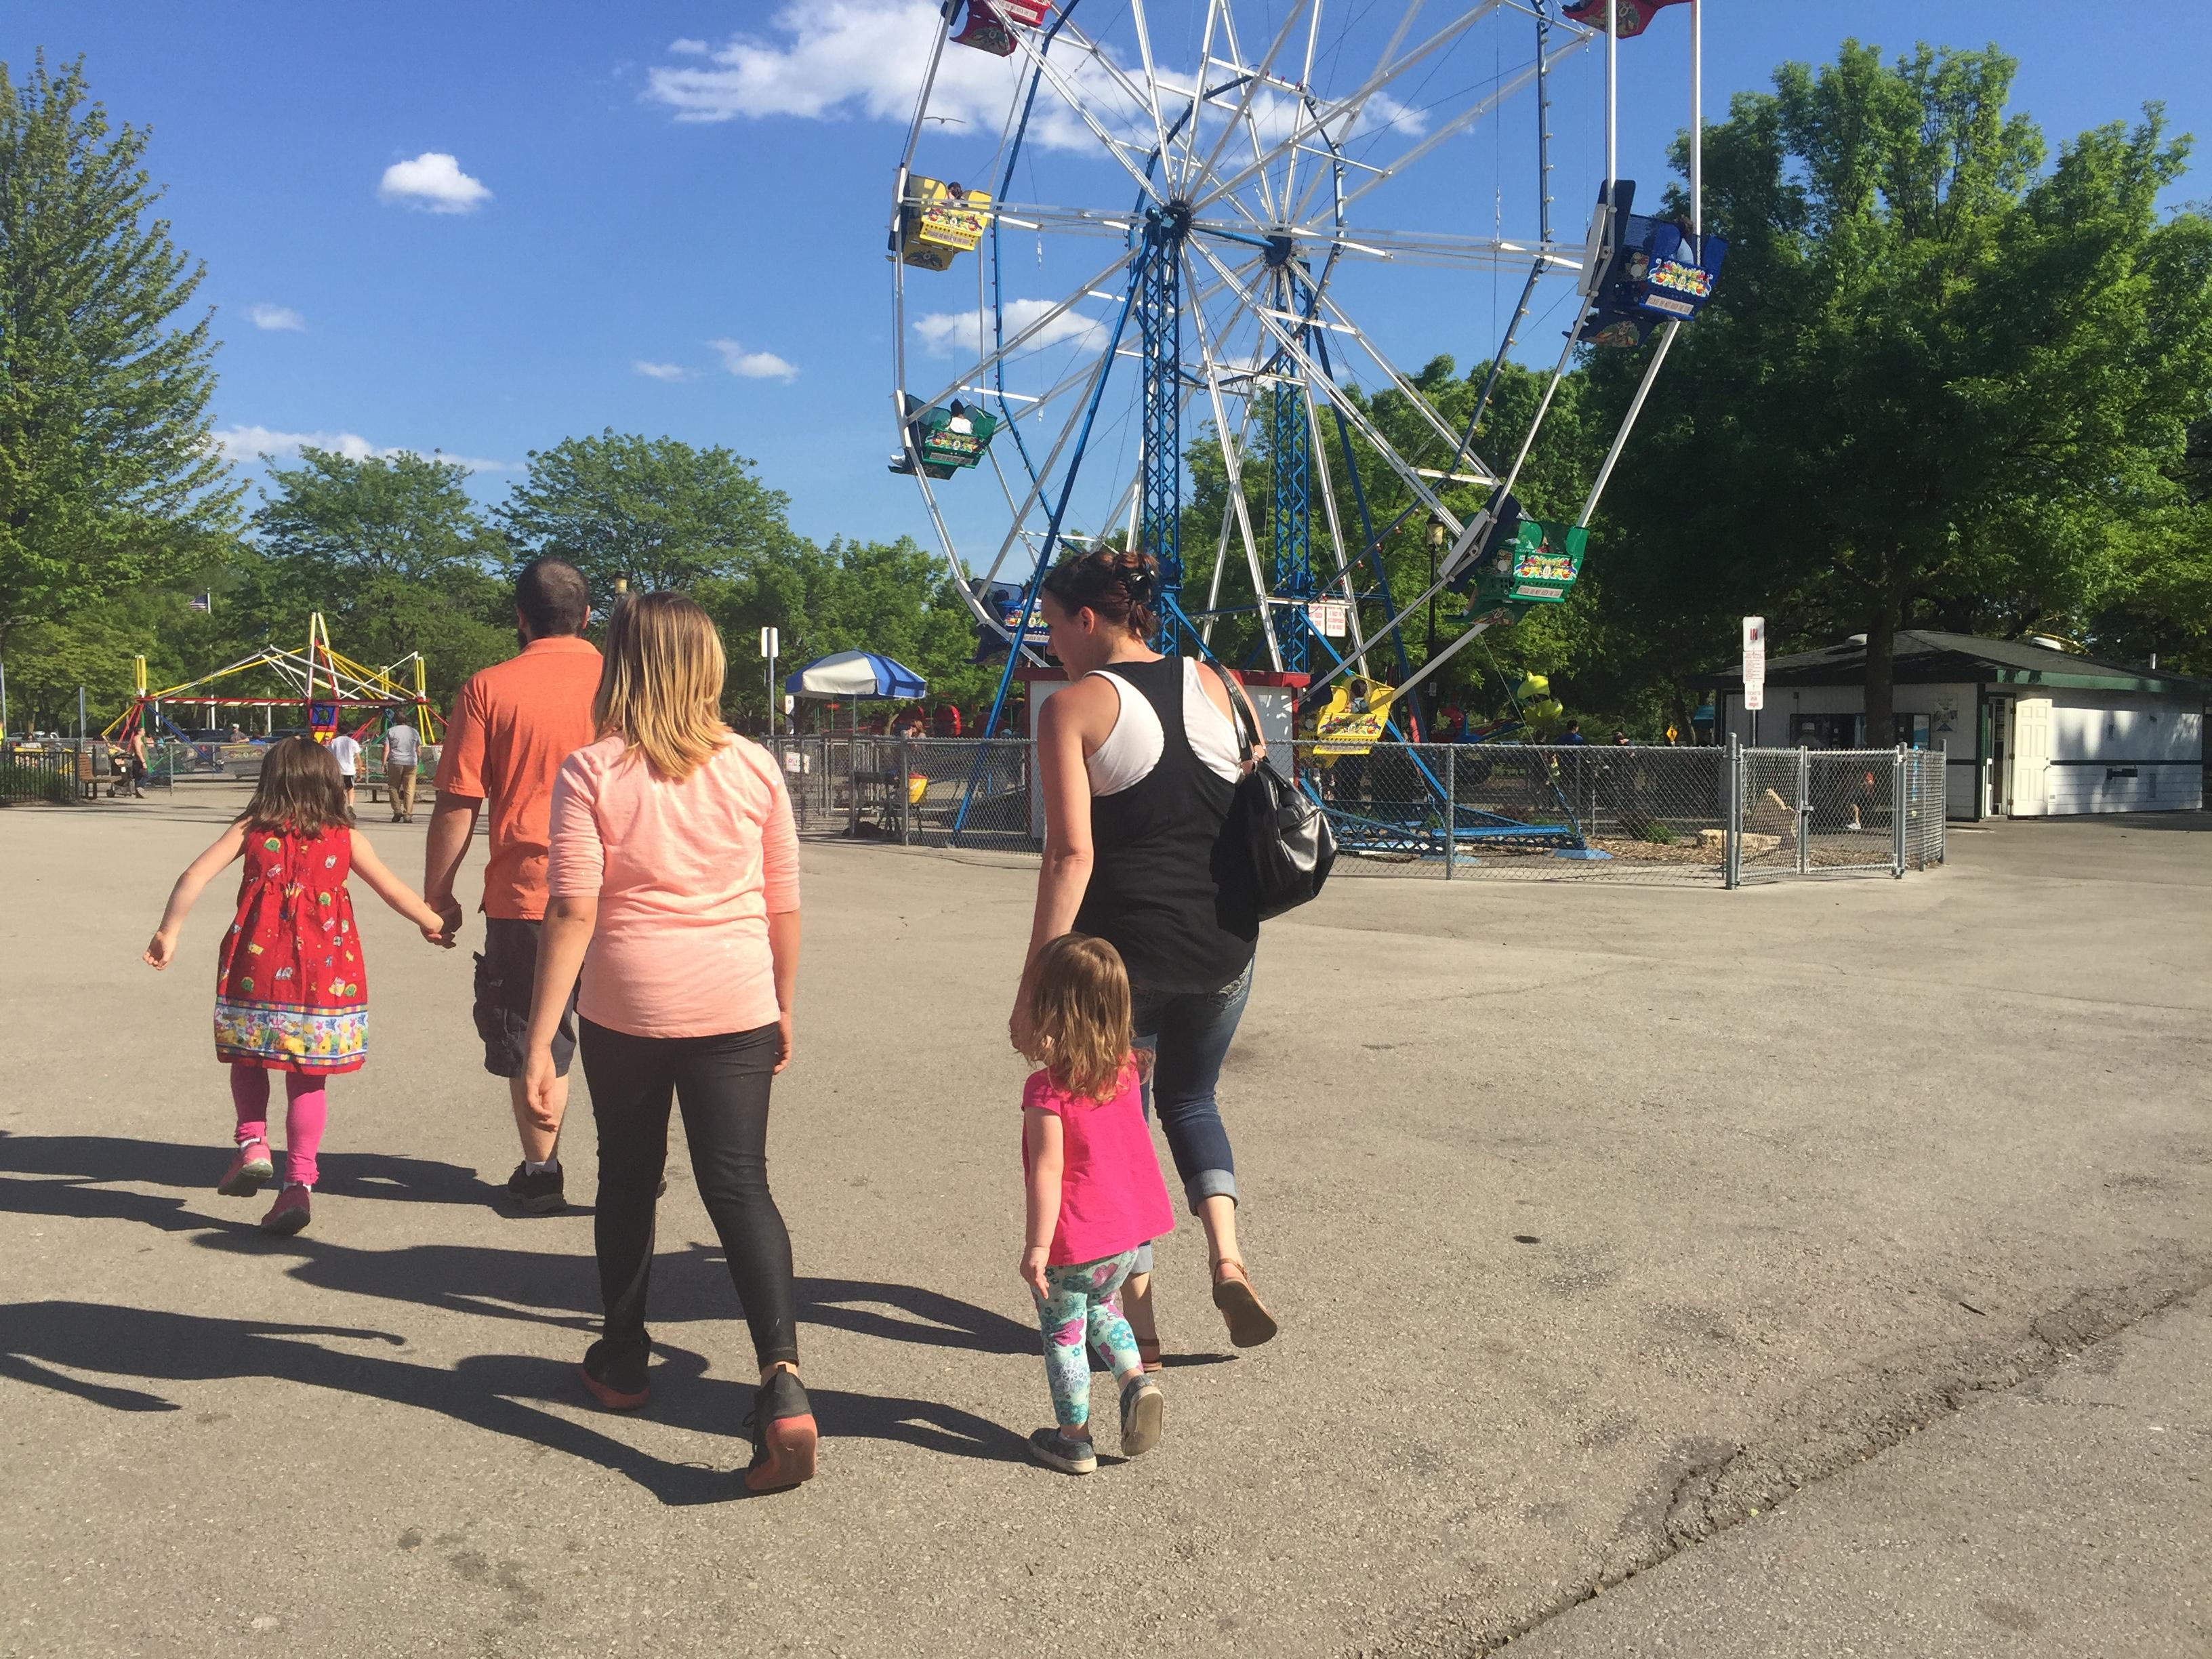 A family walks near the ferris wheel at Bay Beach on Thursday, June 1, 2017. (WLUK/Gabrielle Mays)